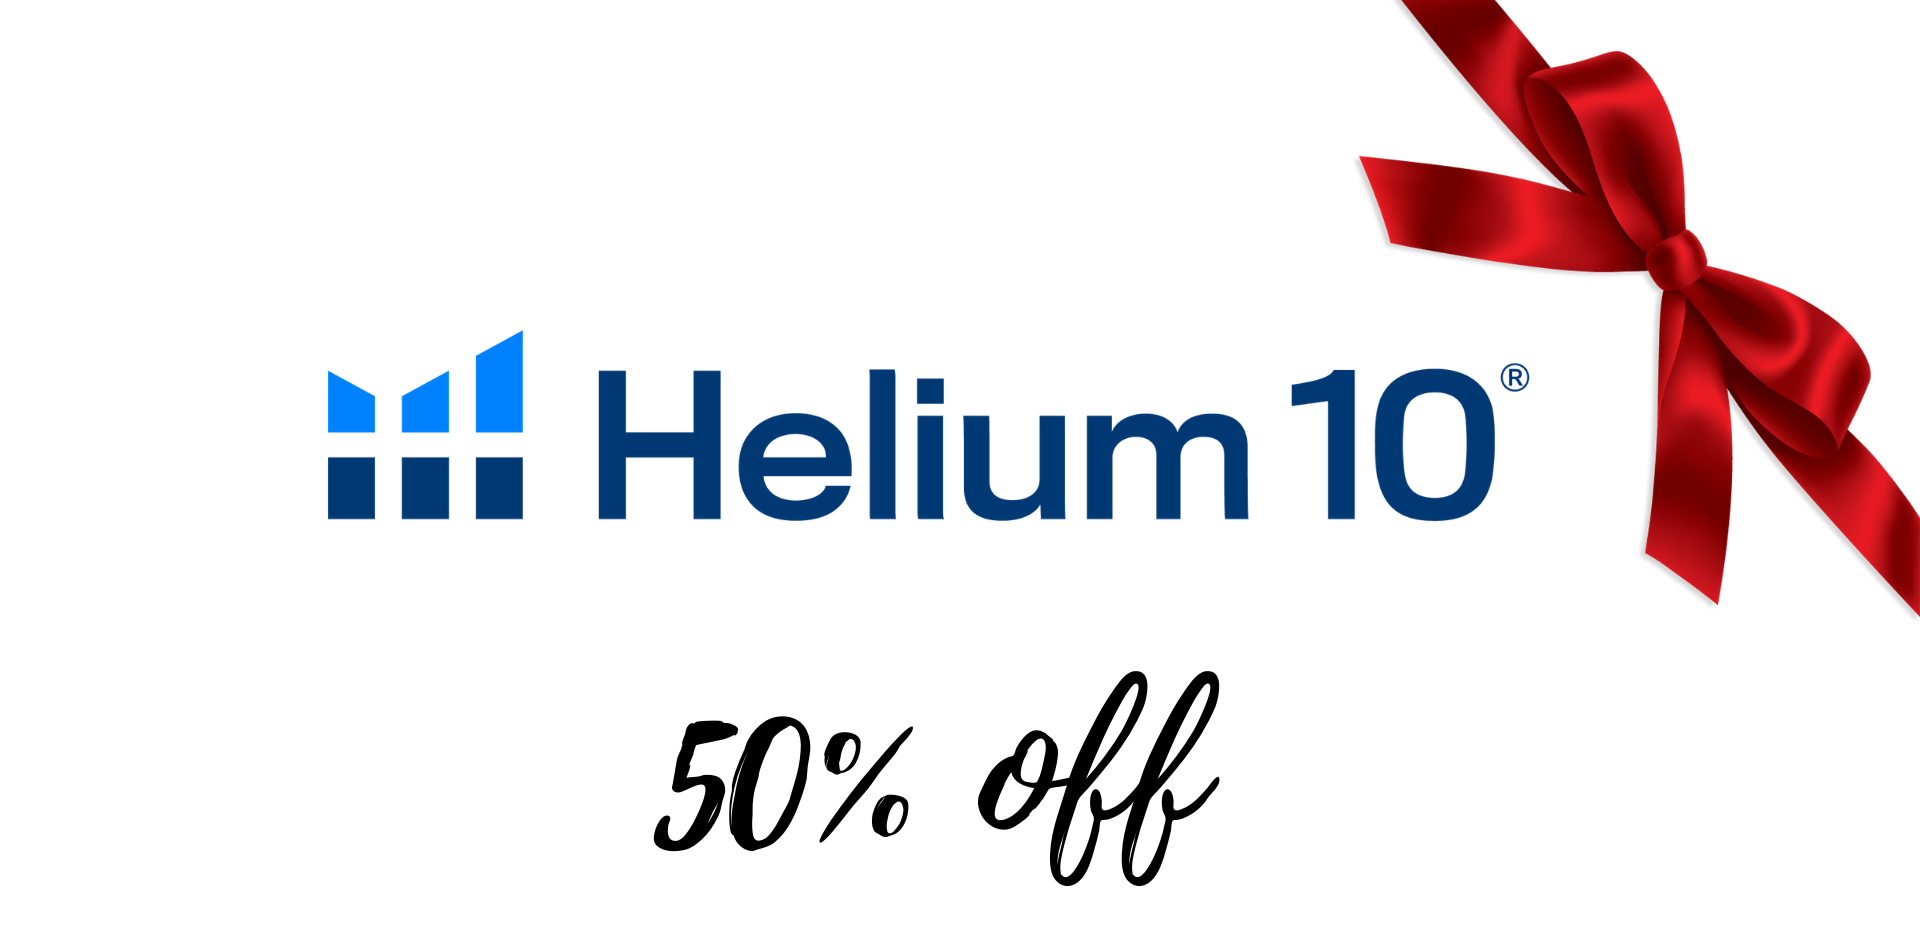 Is Helium 10 Free